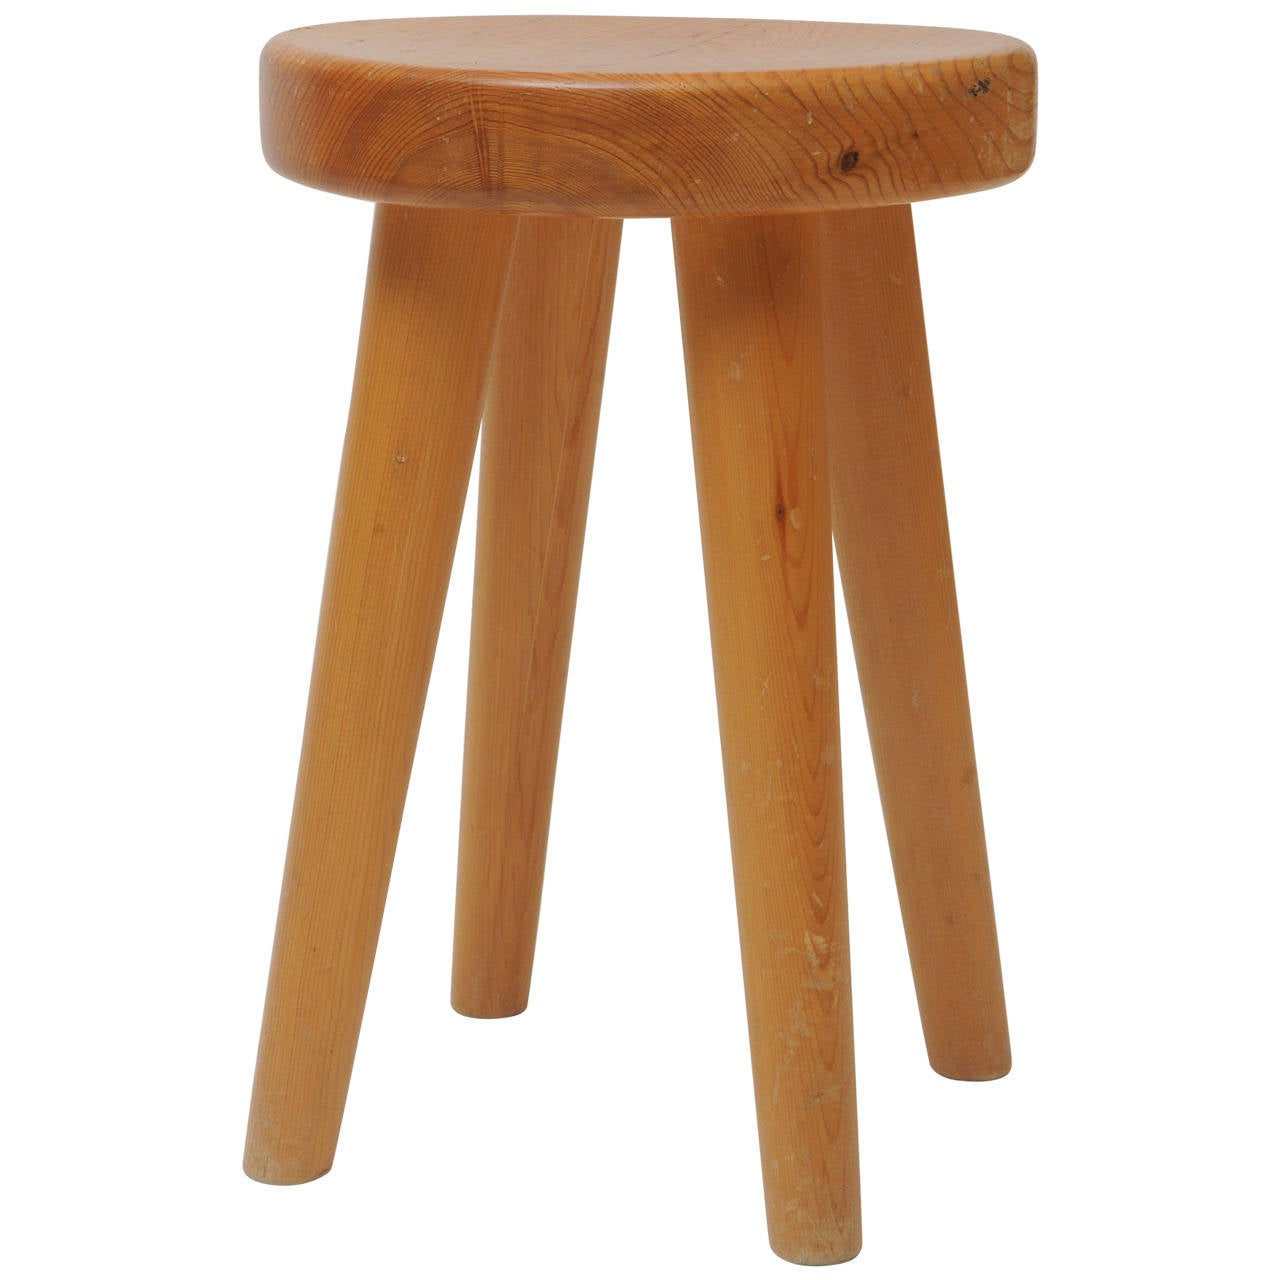 Four Legs Stool In The Manner Of Charlotte Perriand At 1stdibs